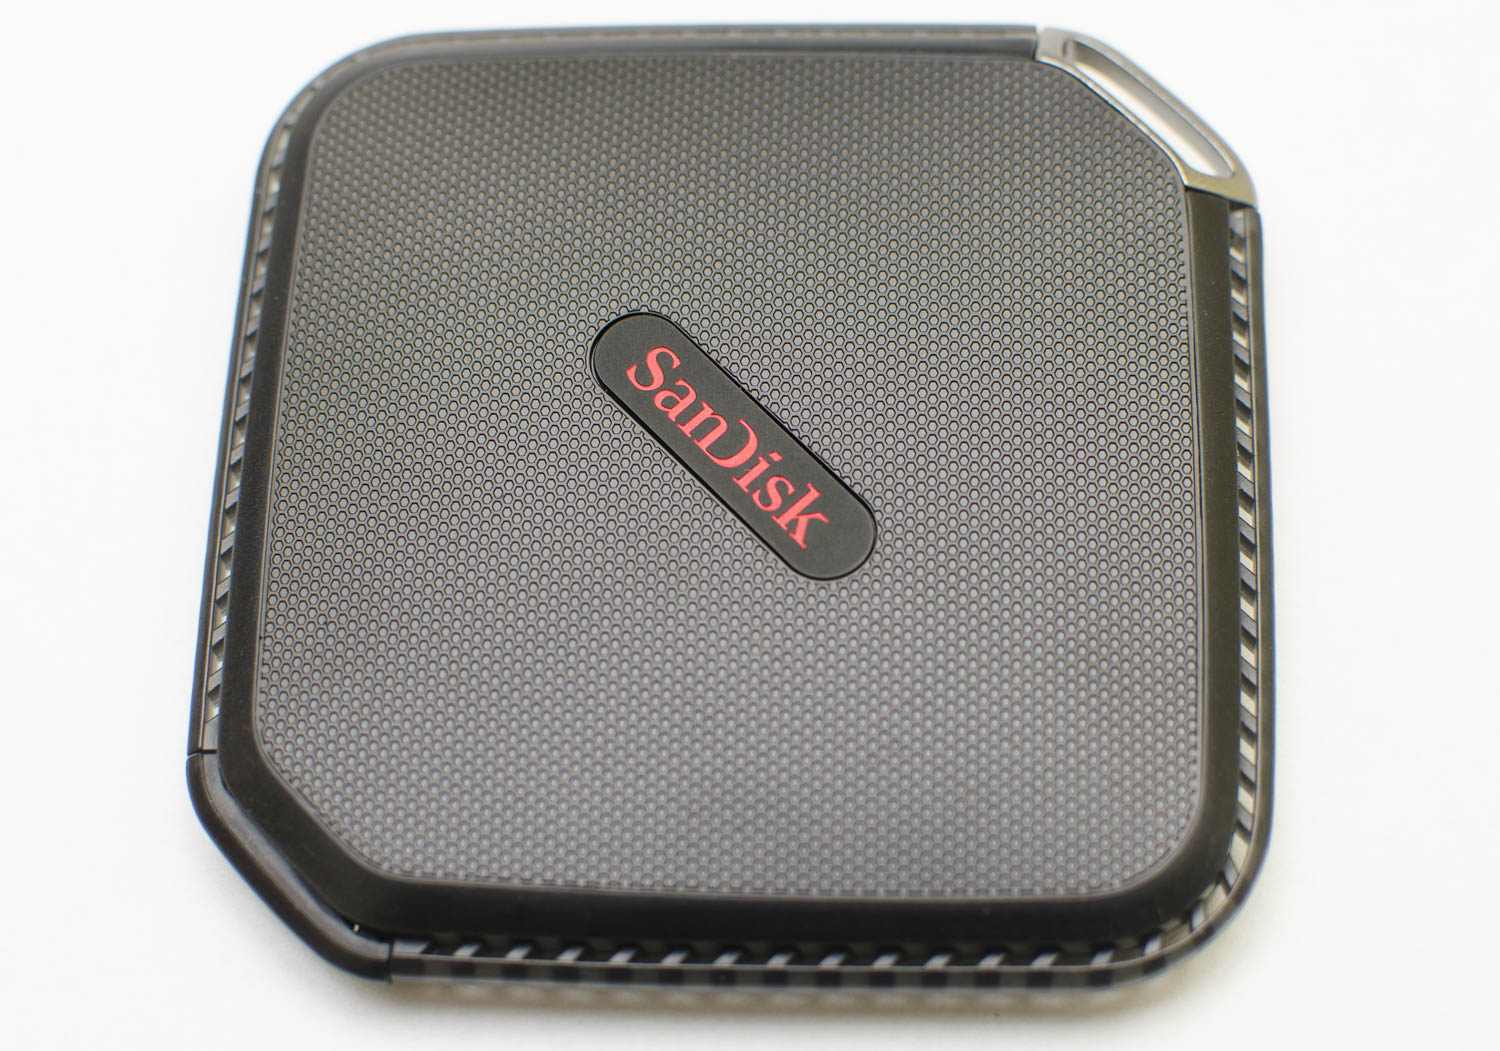 SanDisk SSD Extreme 500 250 GB